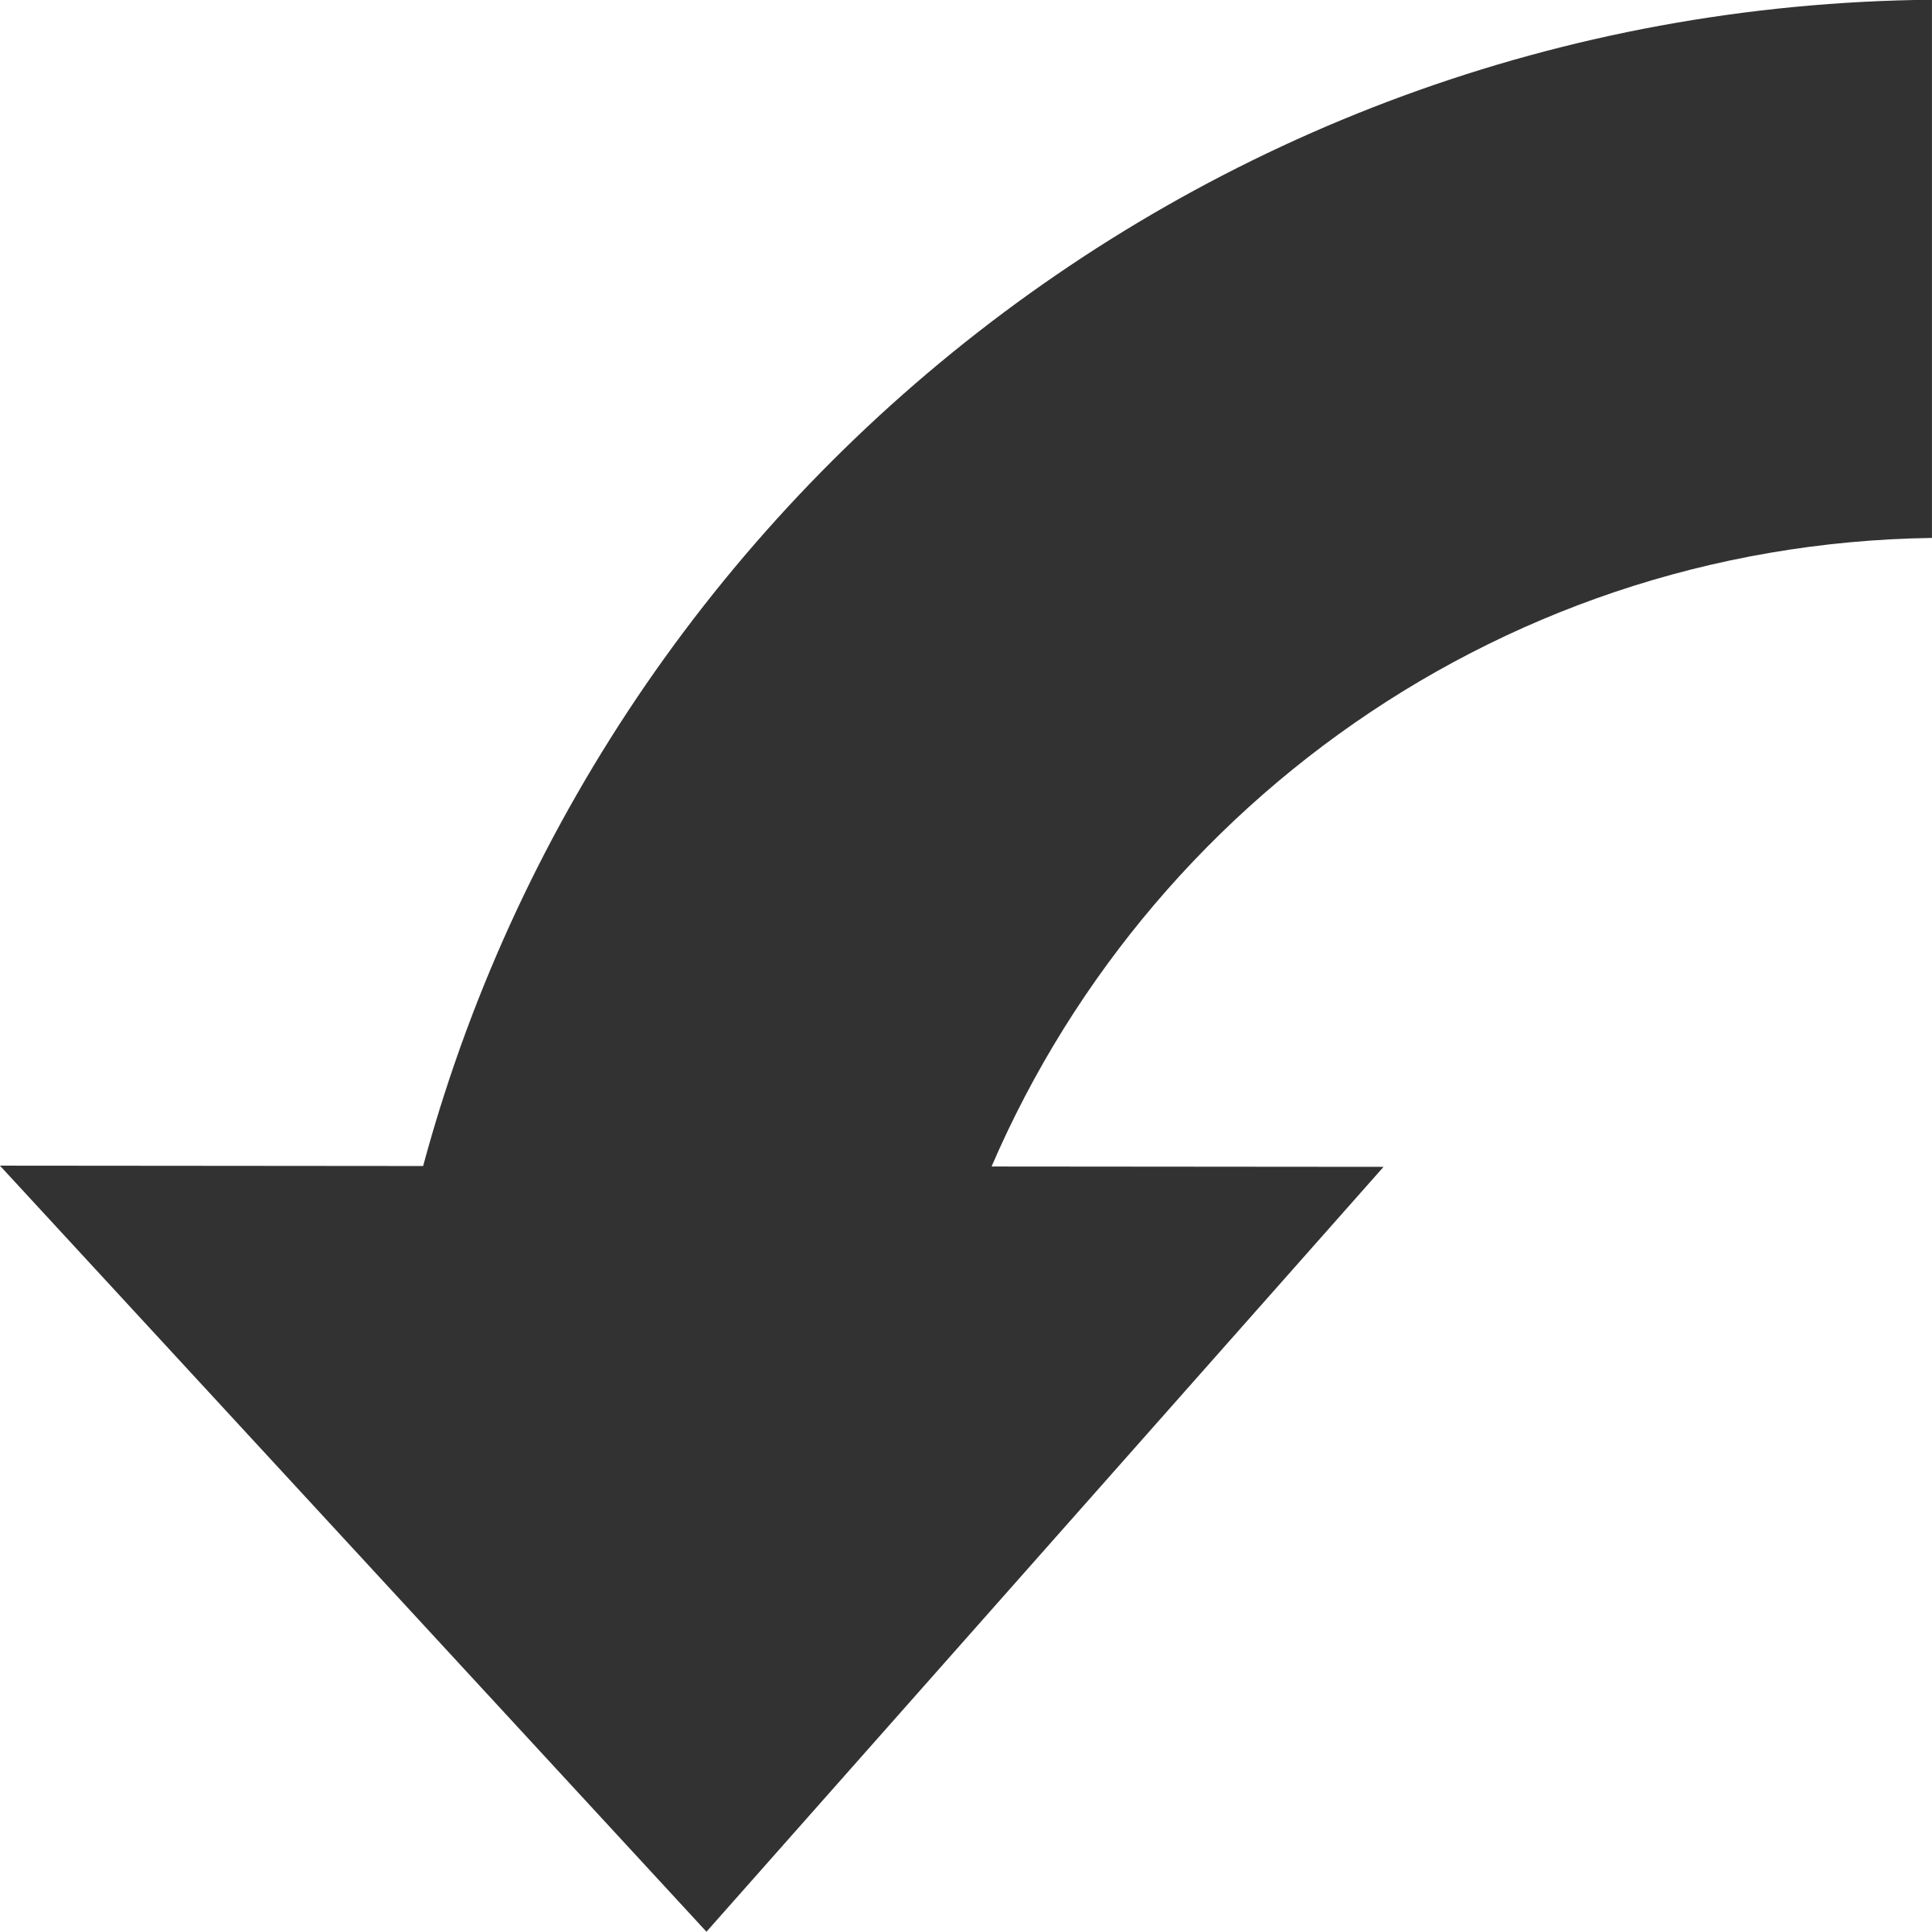 Clipart arrows right. Rotate arrow to bottom